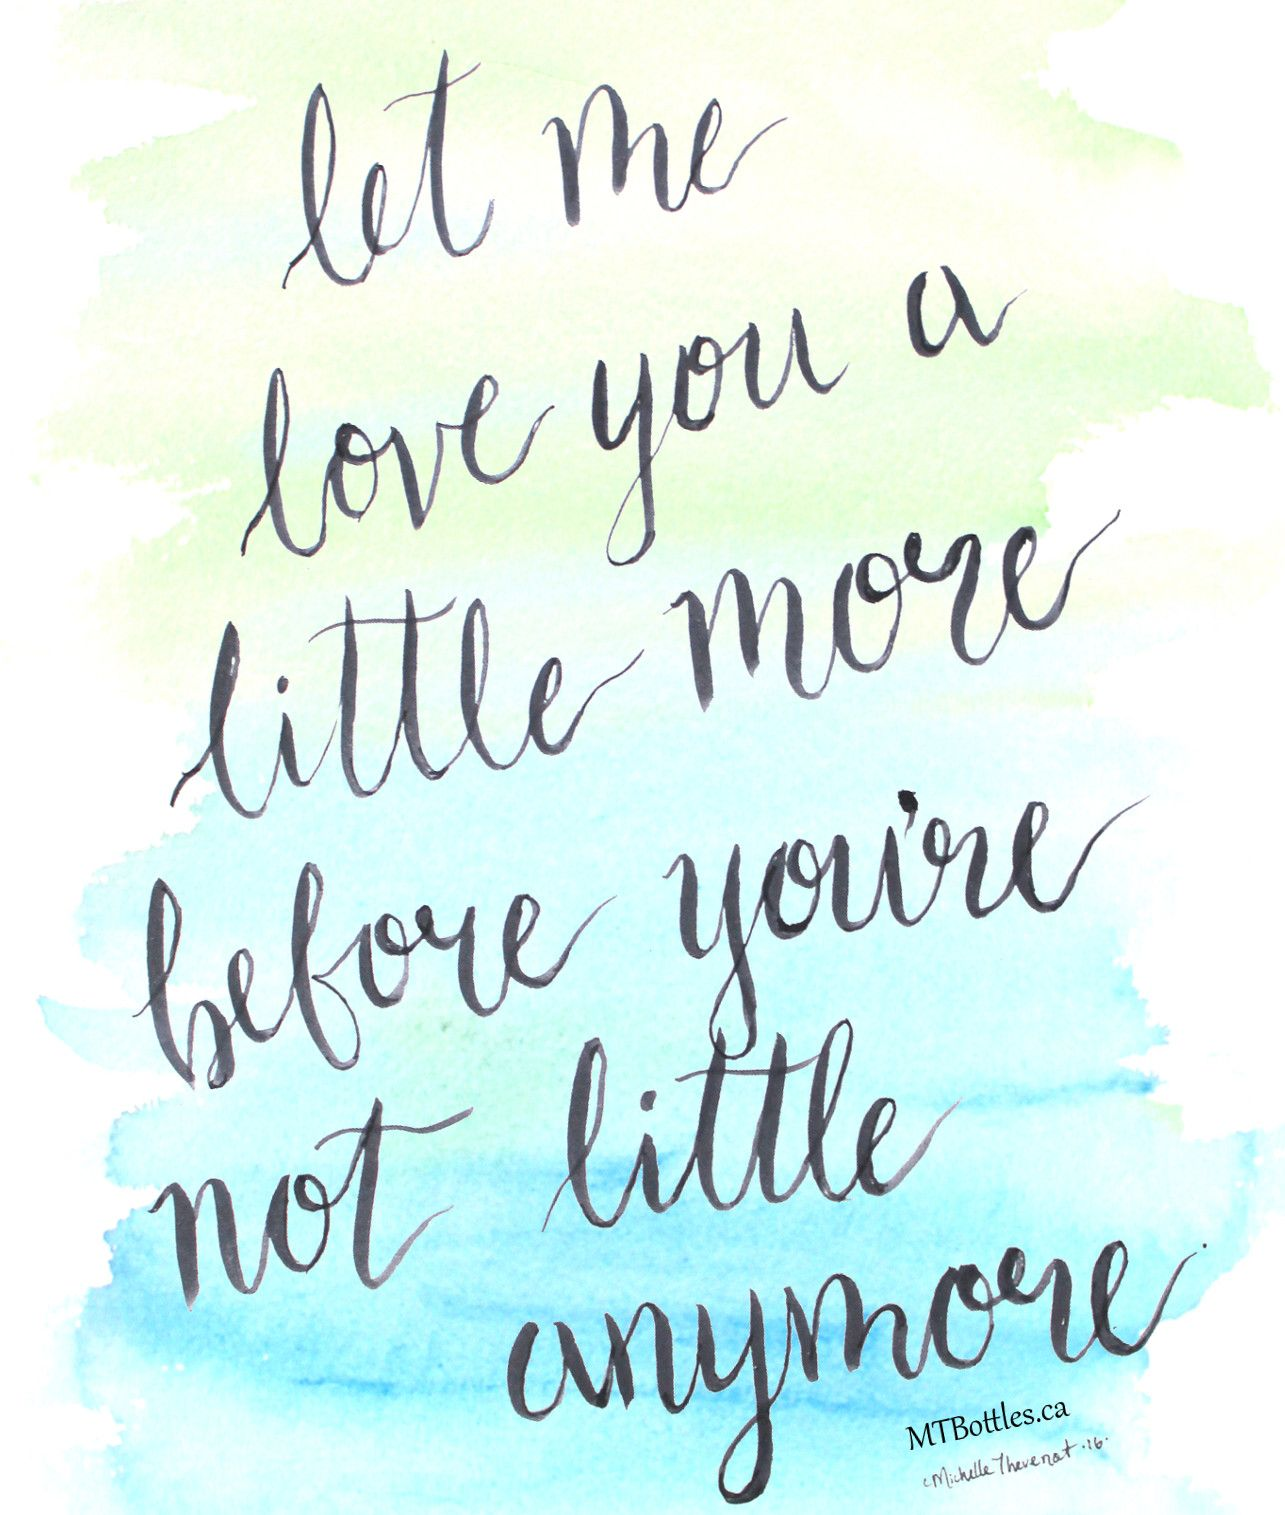 Mother Son Love Quotes Let Me Love You A Little More Before You're Not Little Anymore